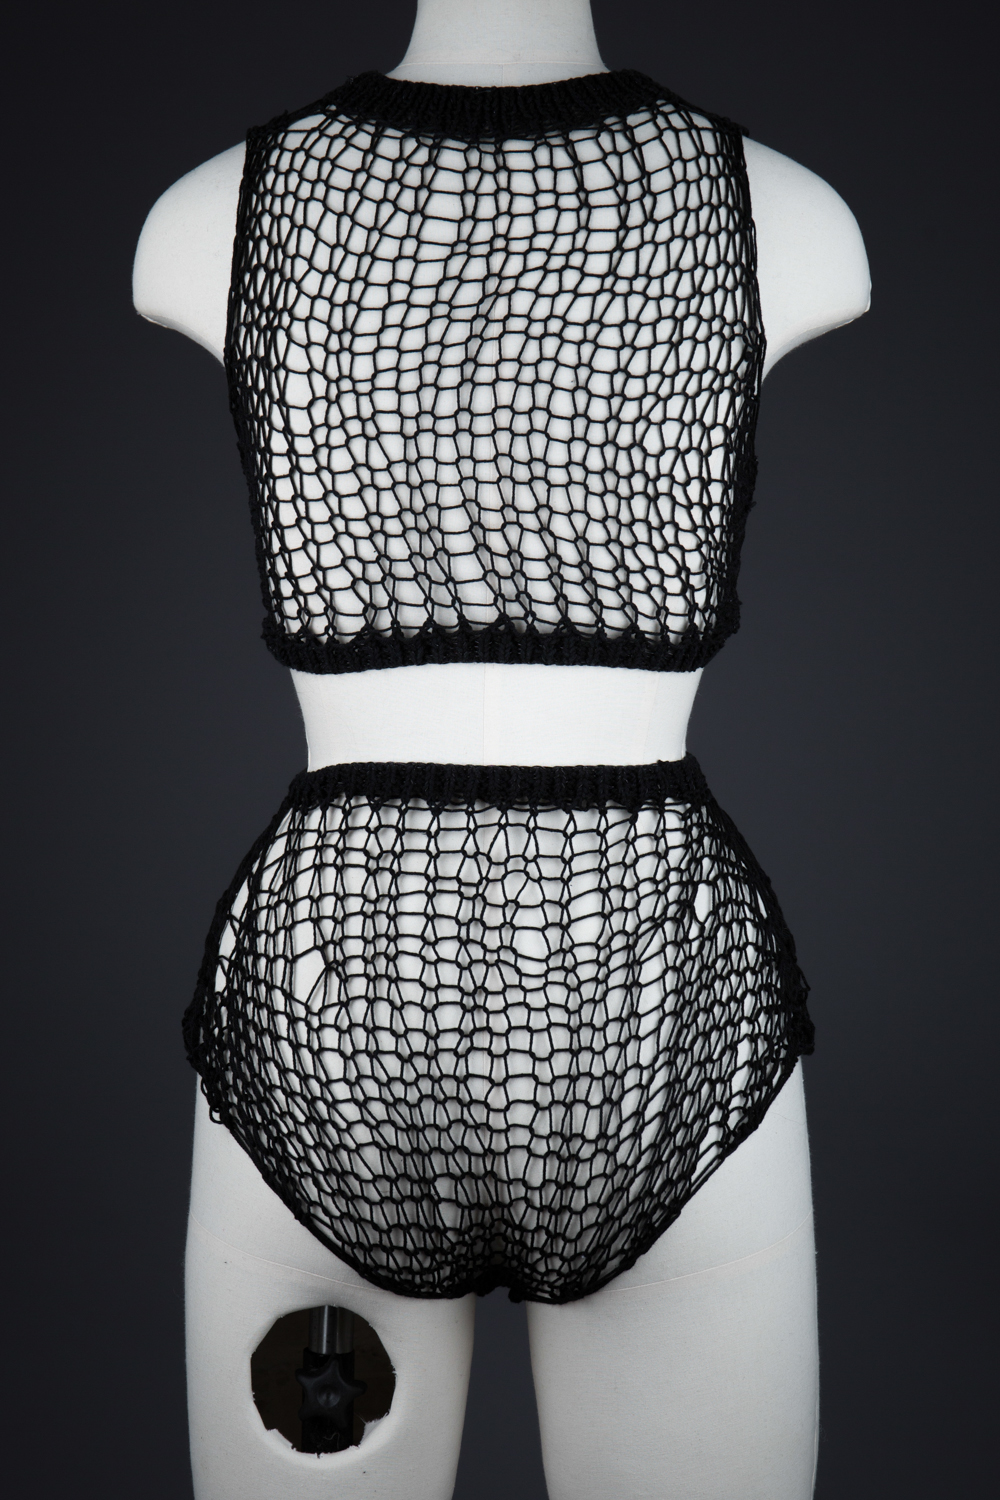 'Alice' Knitted Crop Top & Knickers by Maude Nibelungen, 2017, Canada. The Underpinnings Museum. Photography by Tigz Rice.